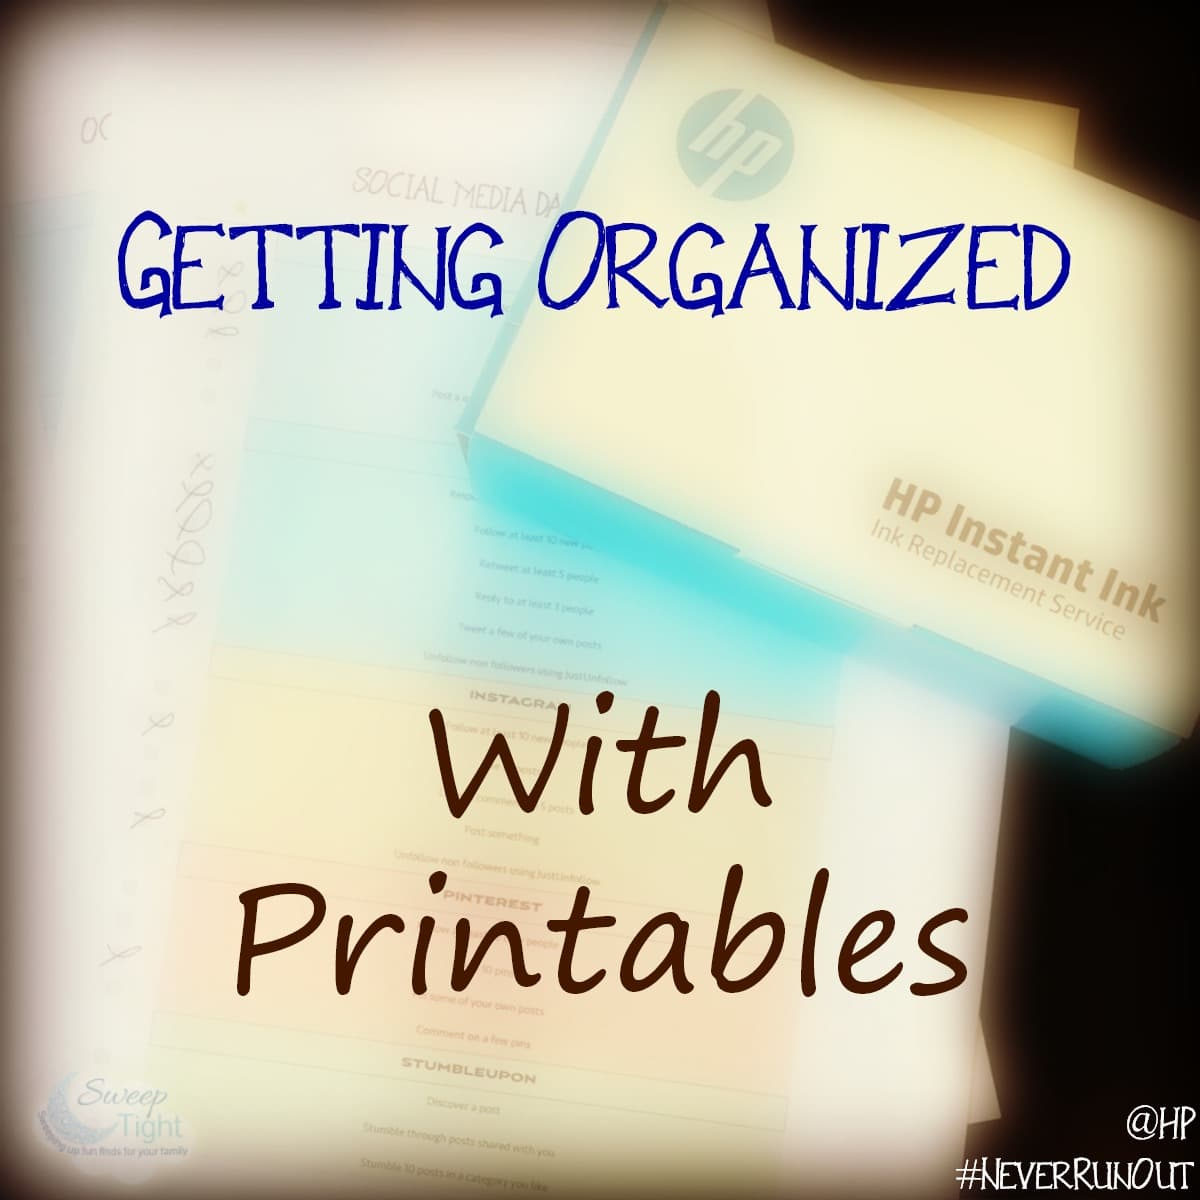 HP Instant Ink is Helping me Get Organized – Free Printables